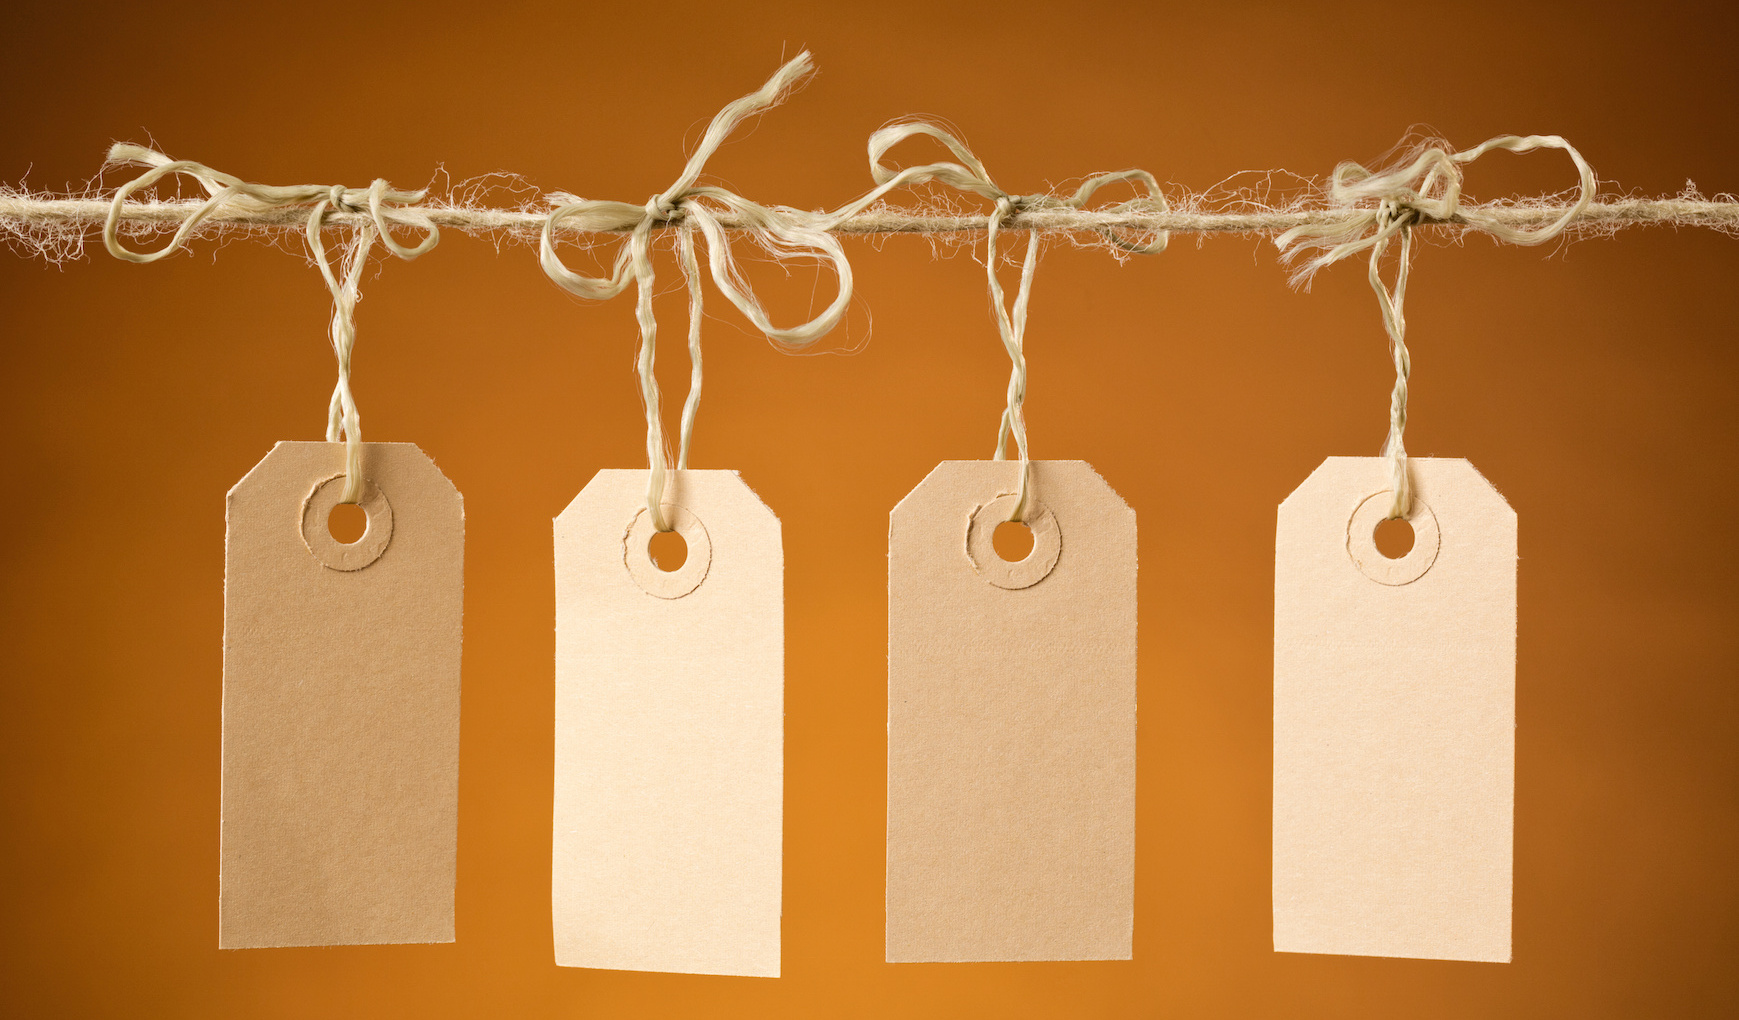 Four blank paper price tag labels hanging next to each other on a rope with orange background.